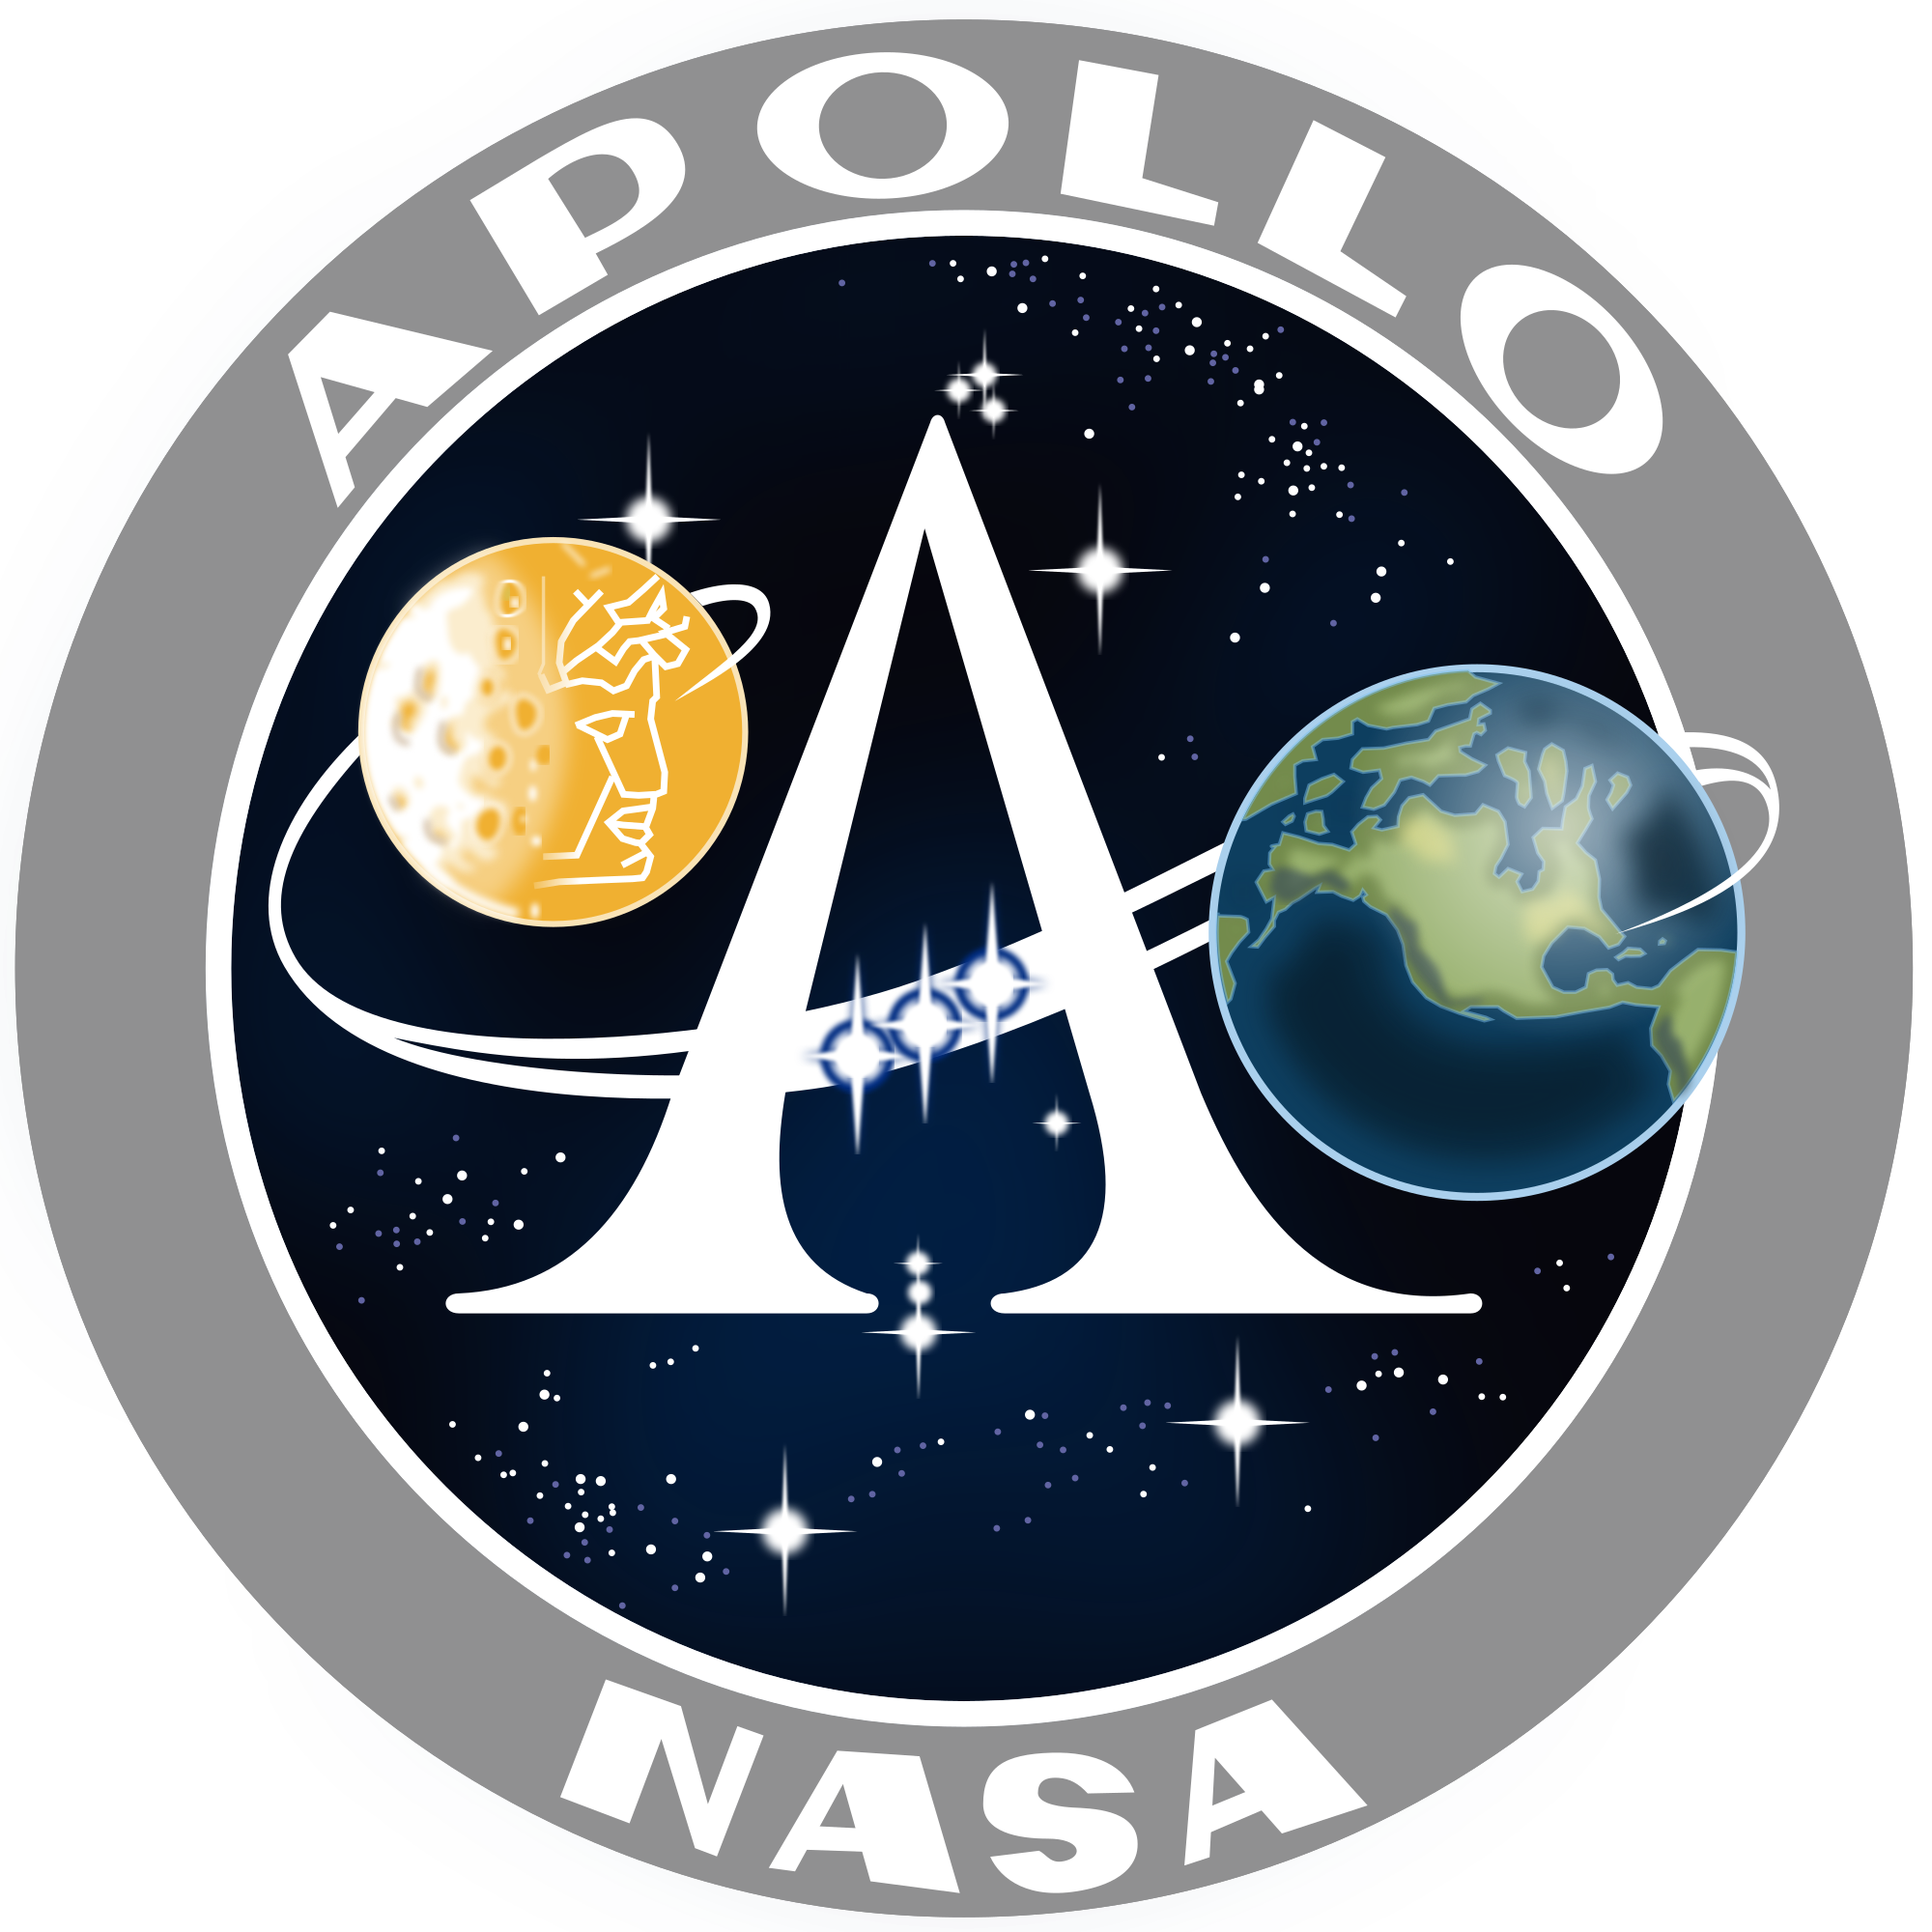 svg library download Svg program. Apollo lunar module wikipedia.